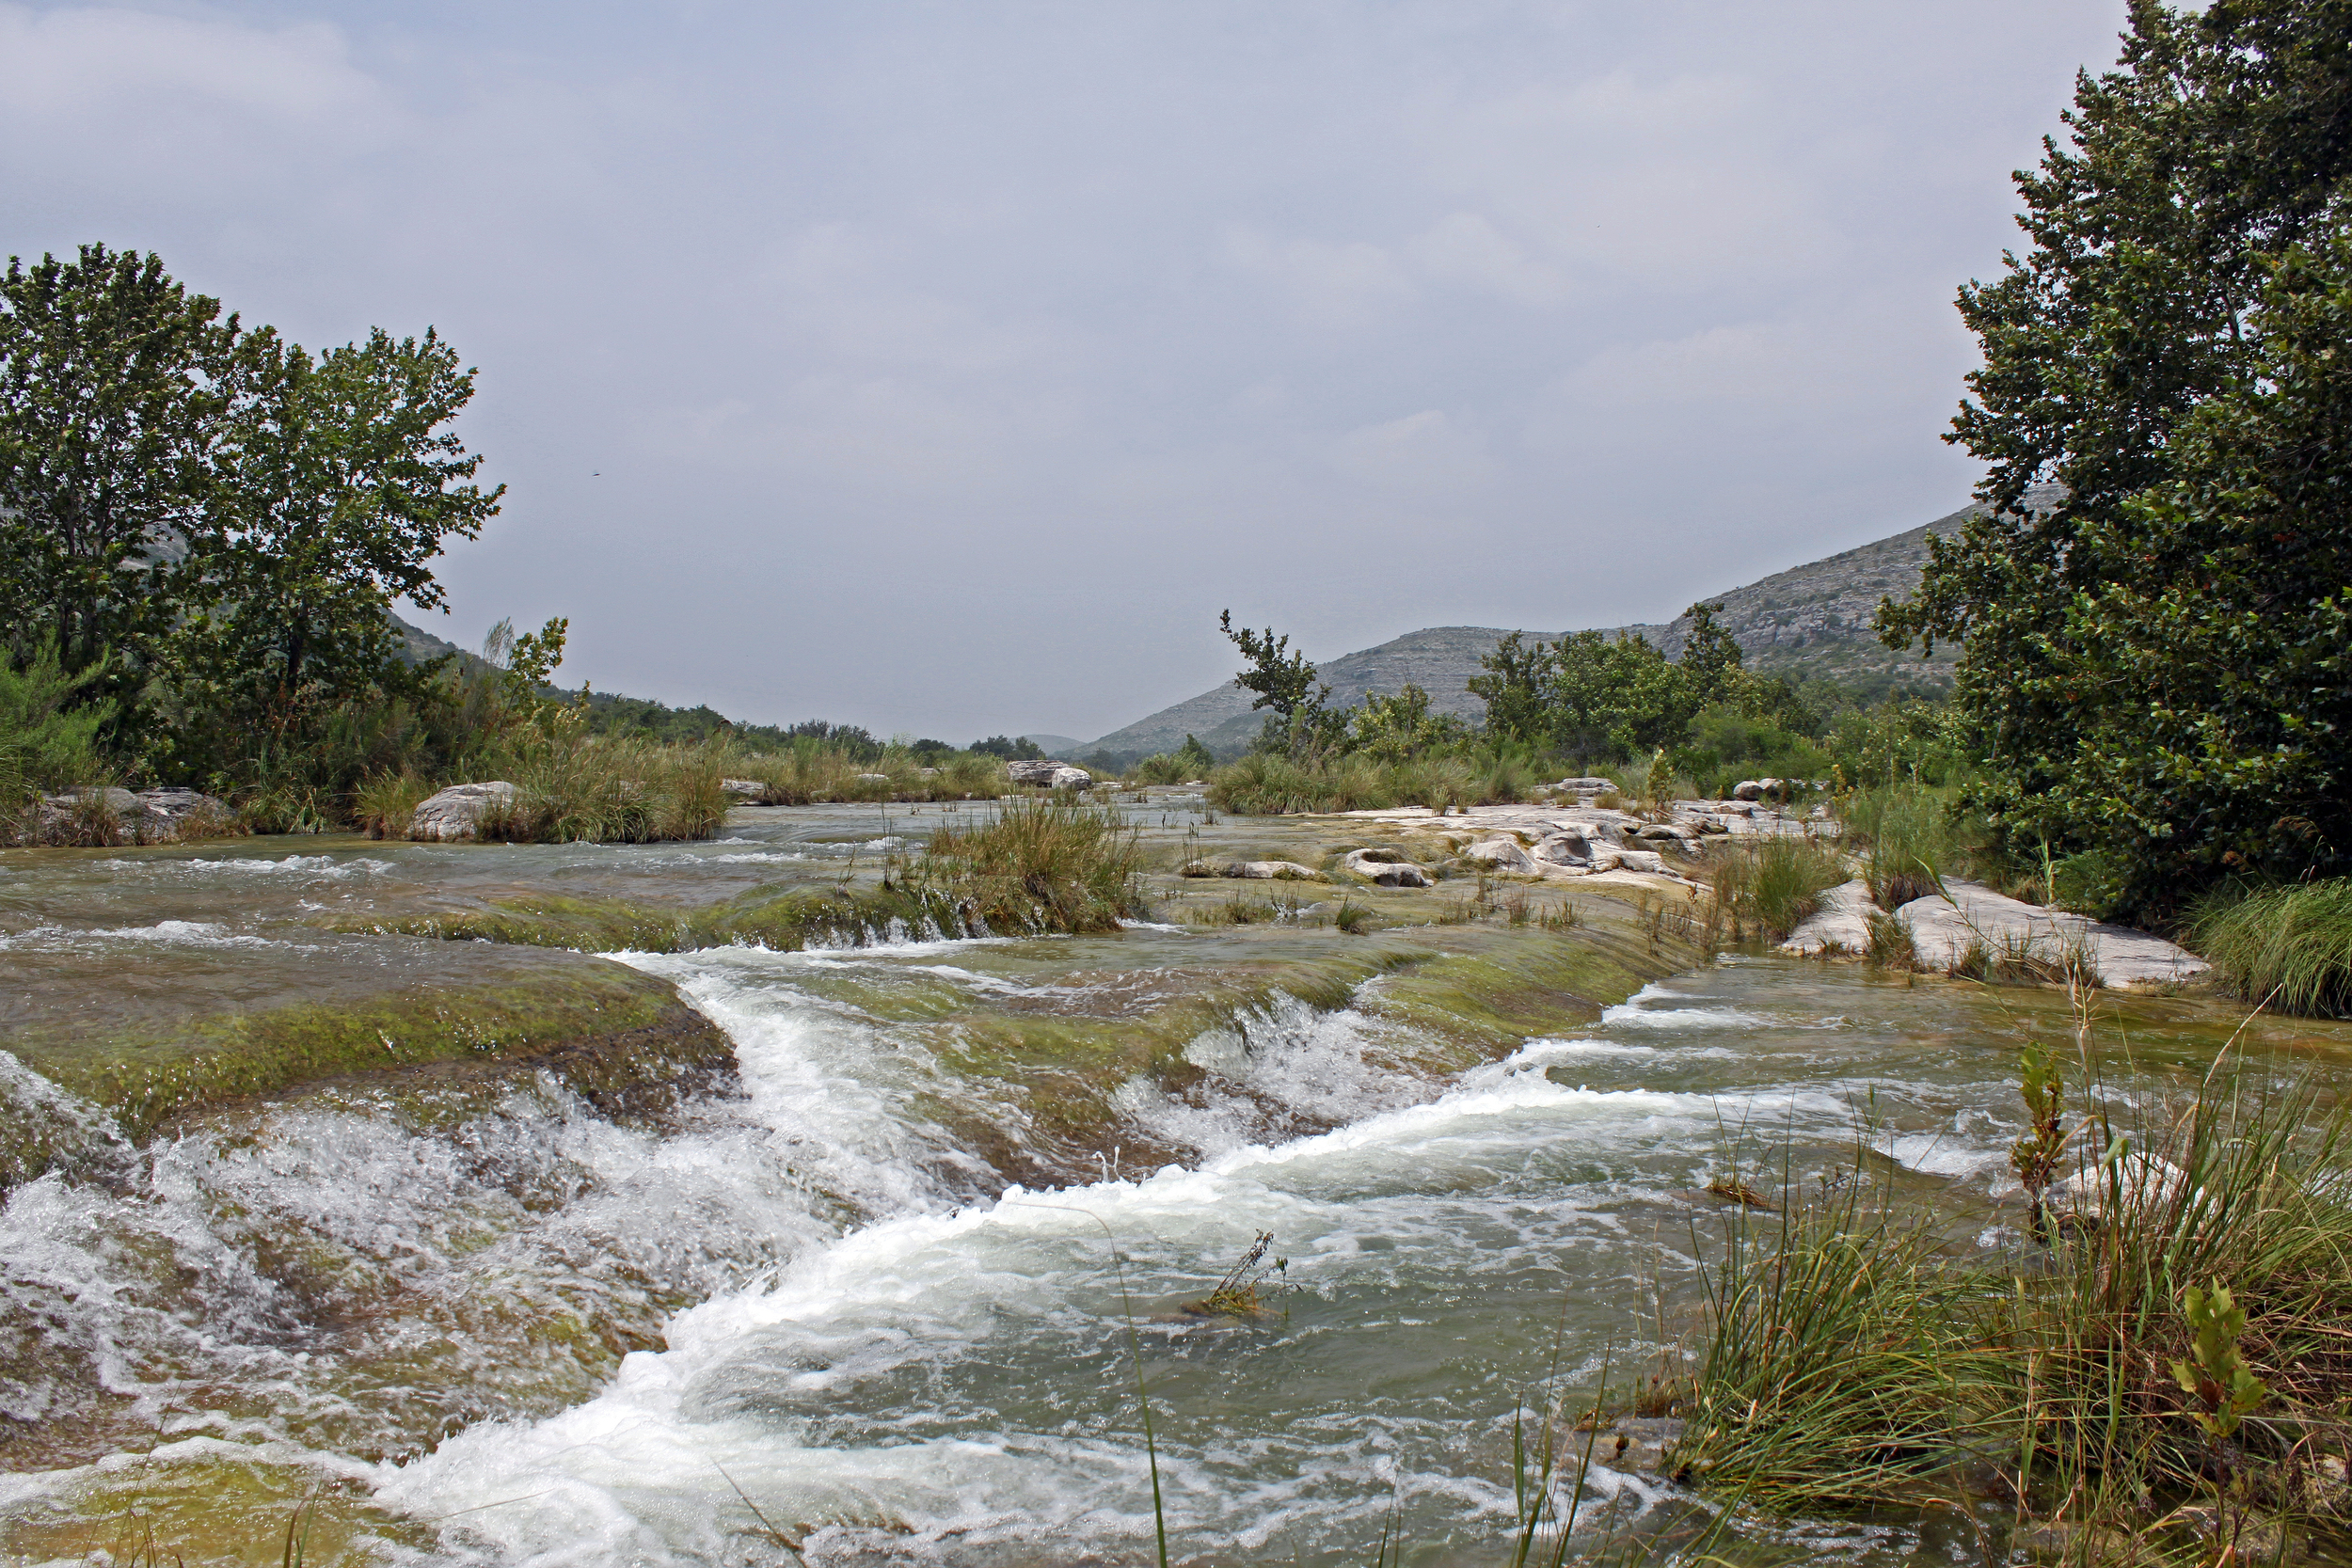 Some rapids on the Devils River